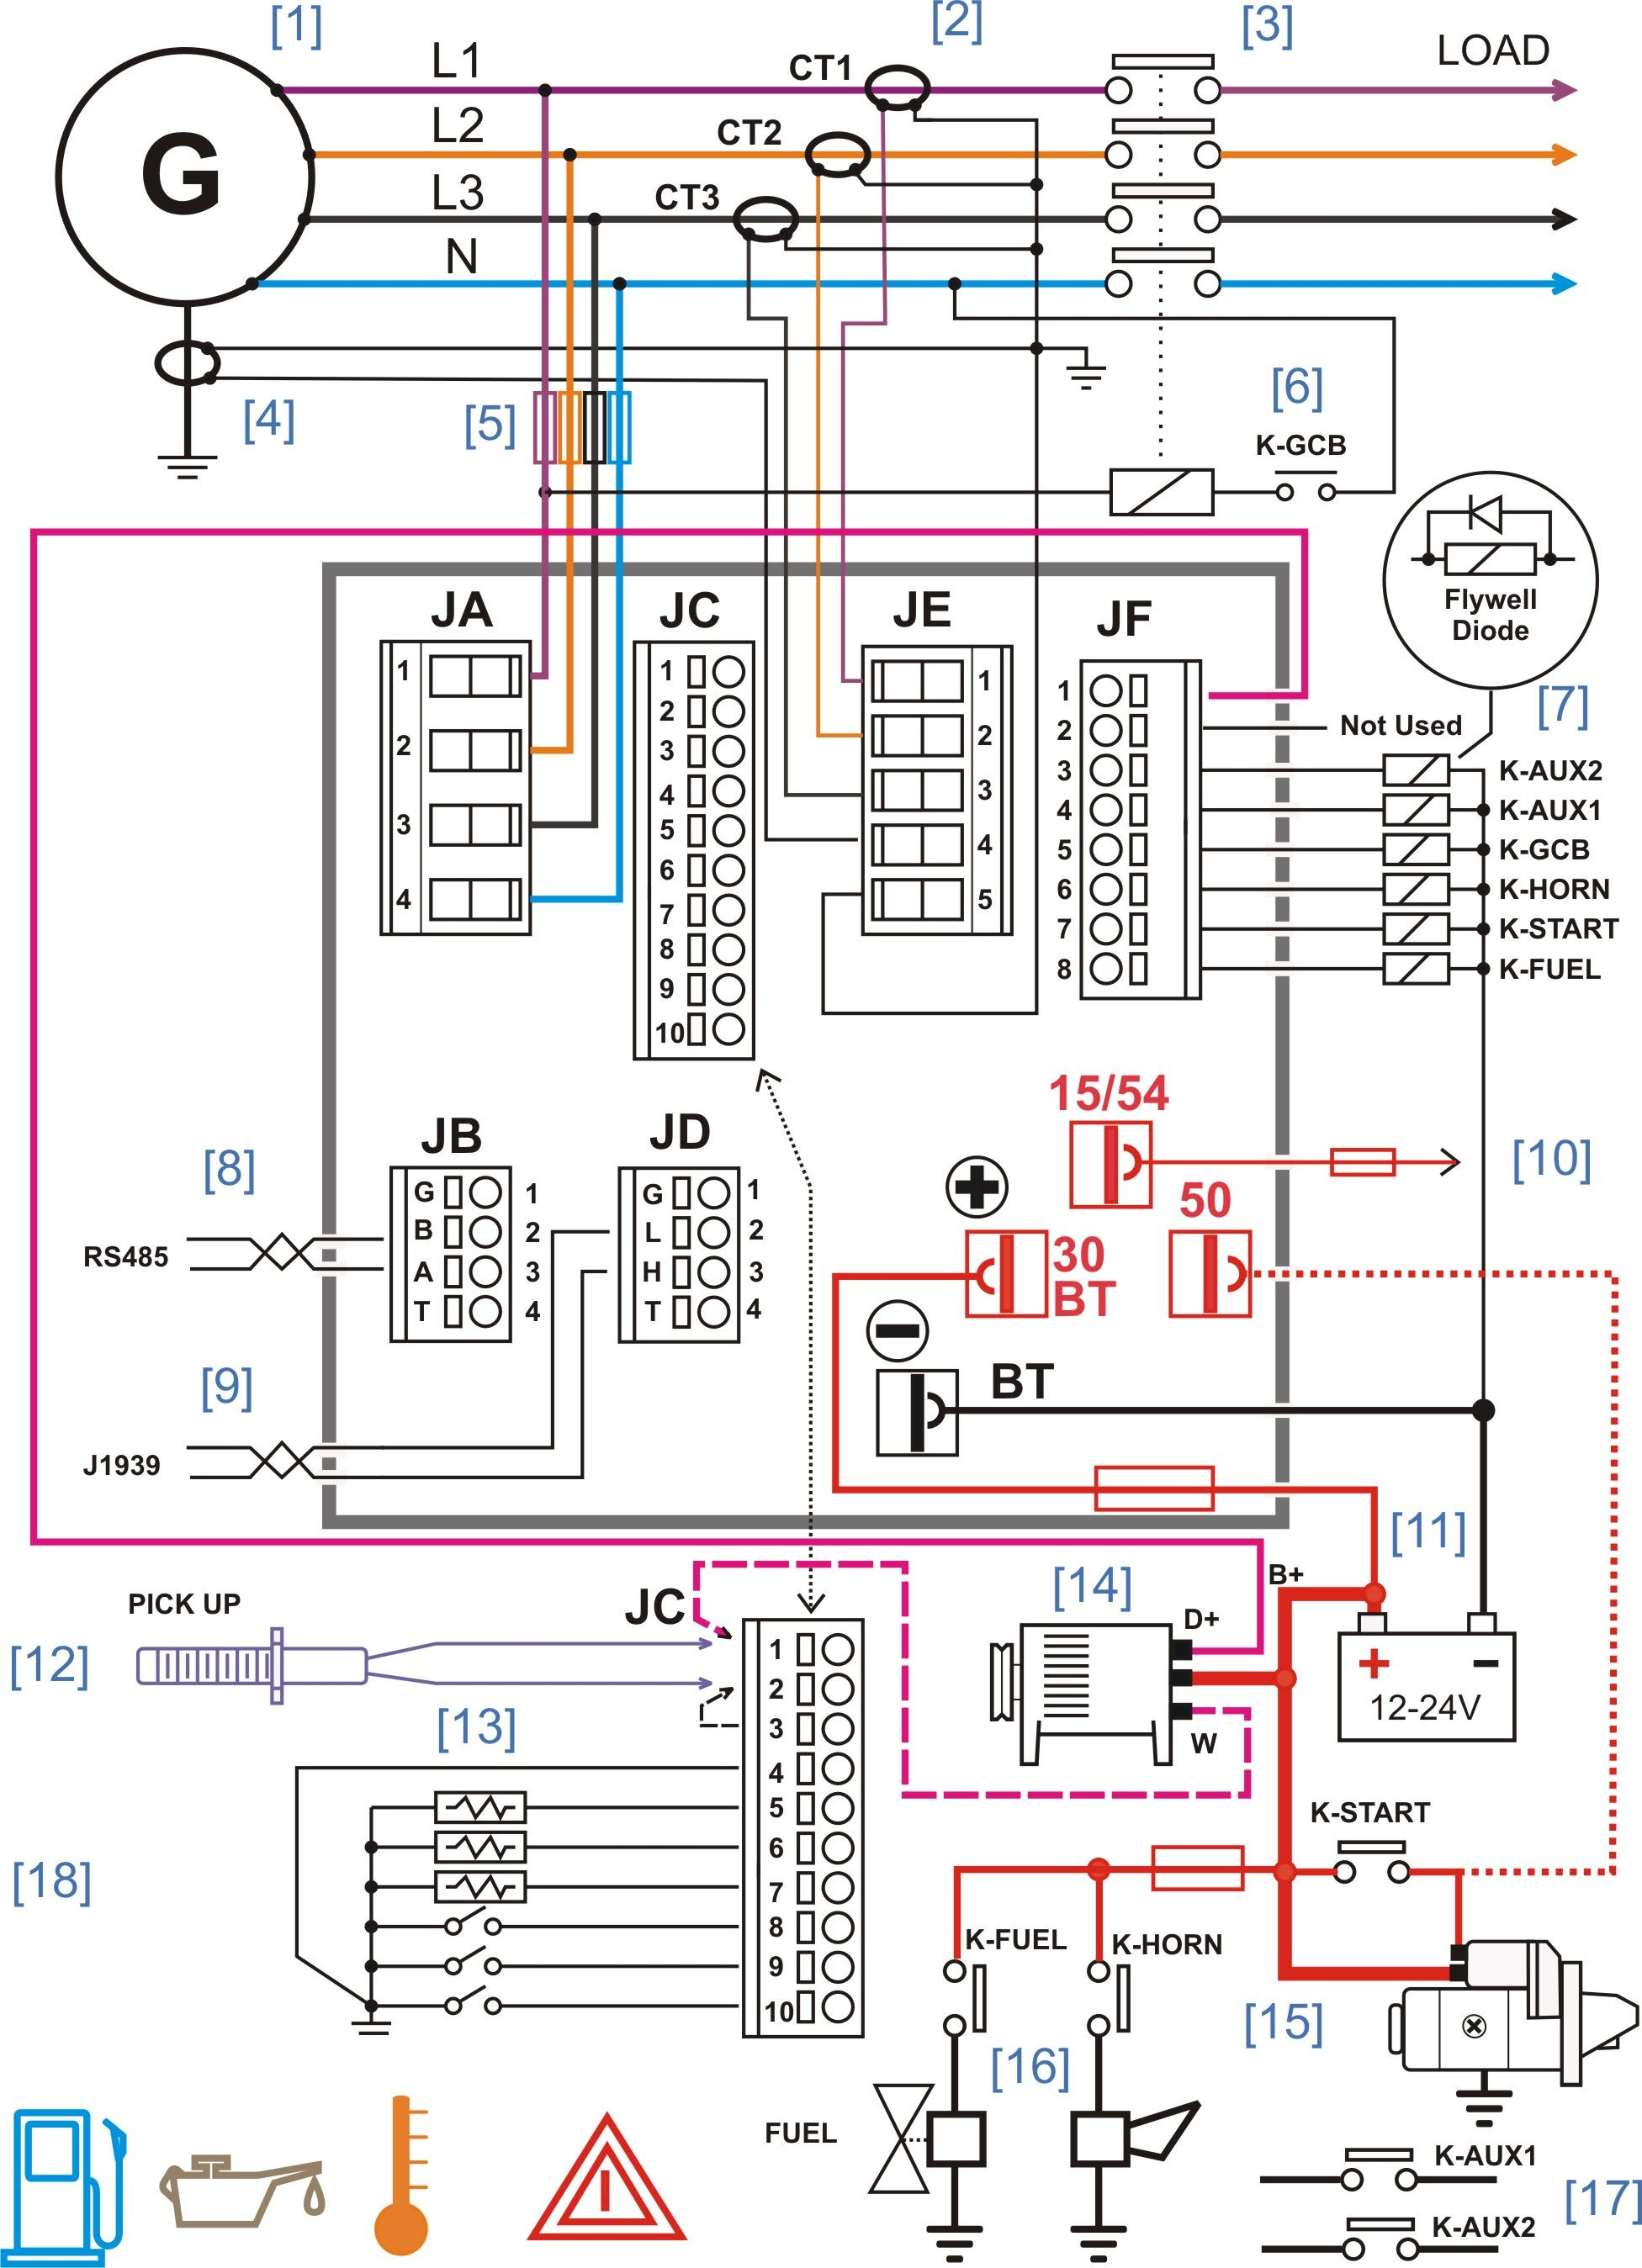 hight resolution of diesel generator control panel wiring diagram diesel generators in ups panel wiring diagram plc panel wiring